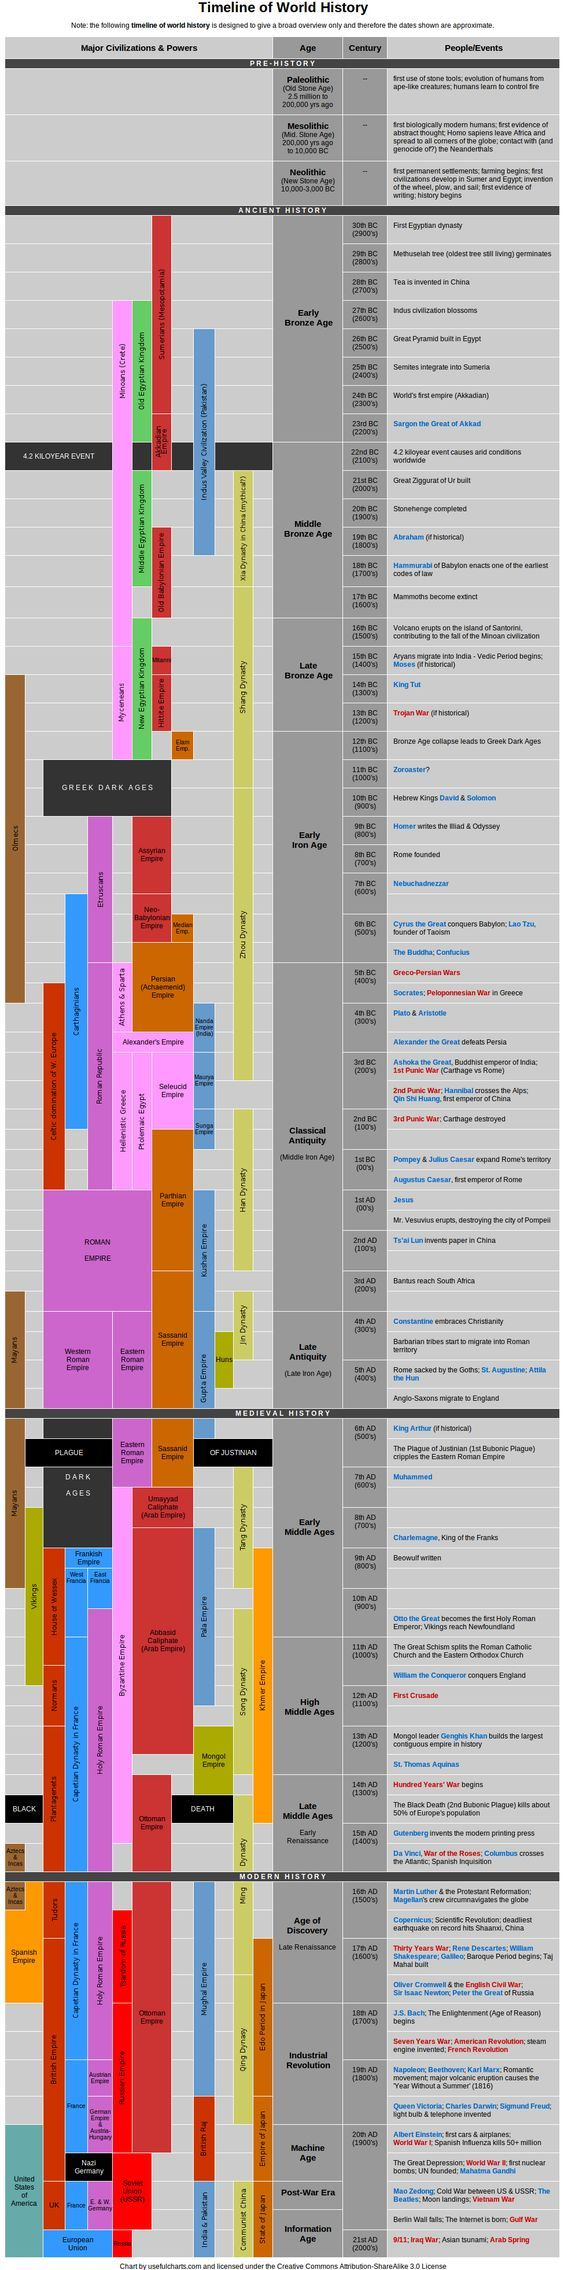 world timeline - Google Search